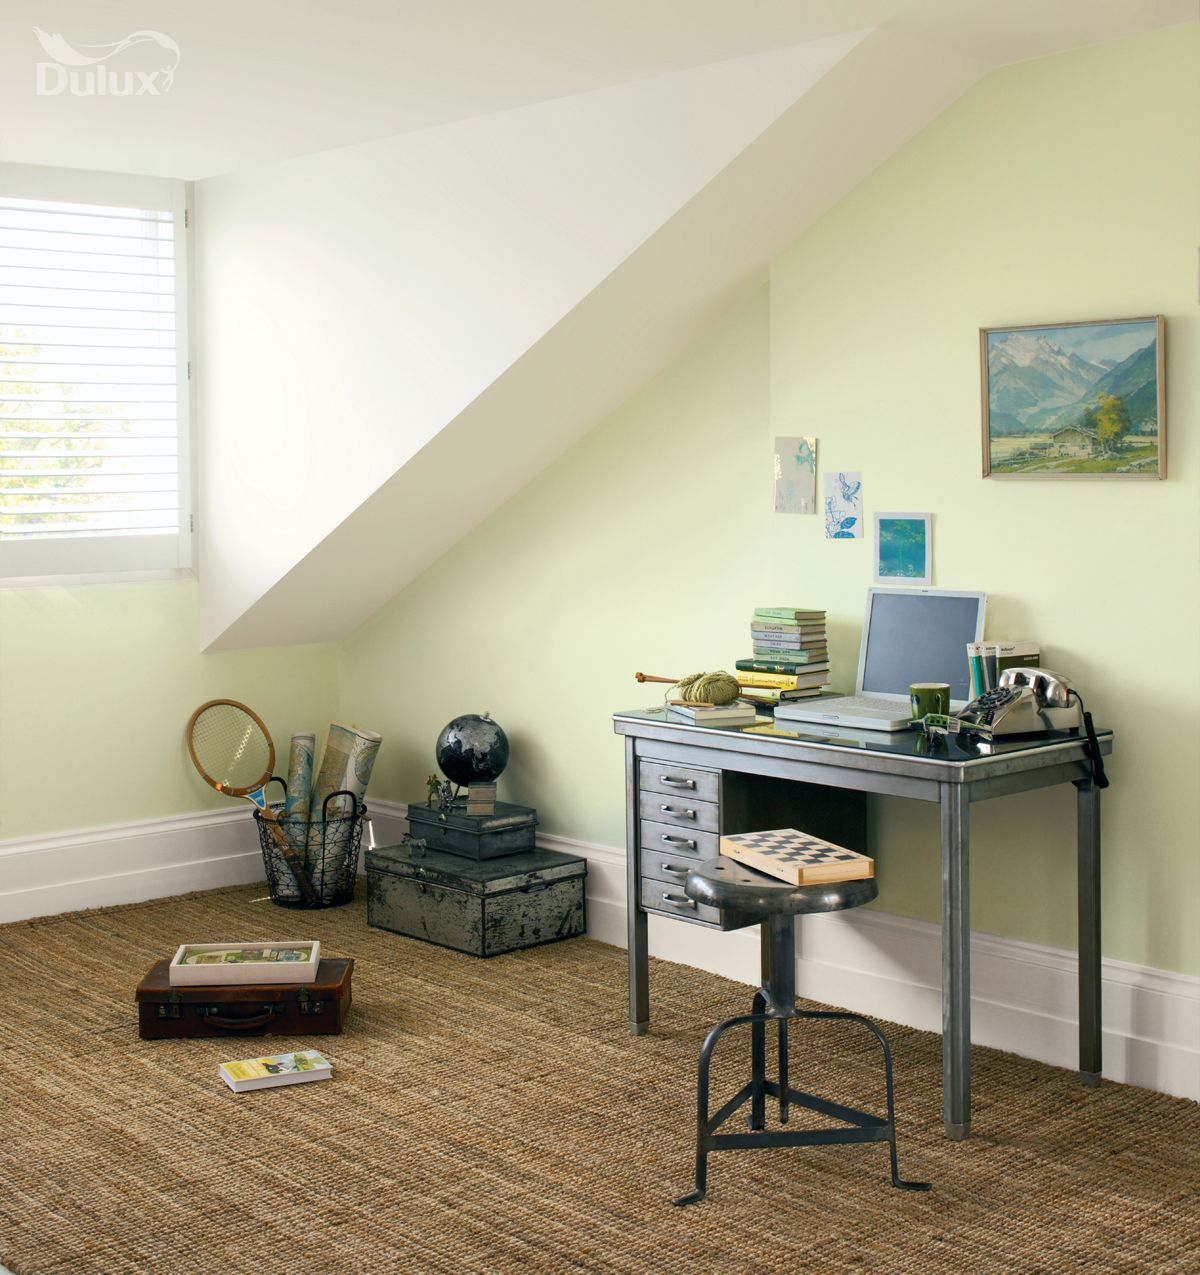 Dulux light space tm helps open up small dark areas for Dulux paint bedroom ideas